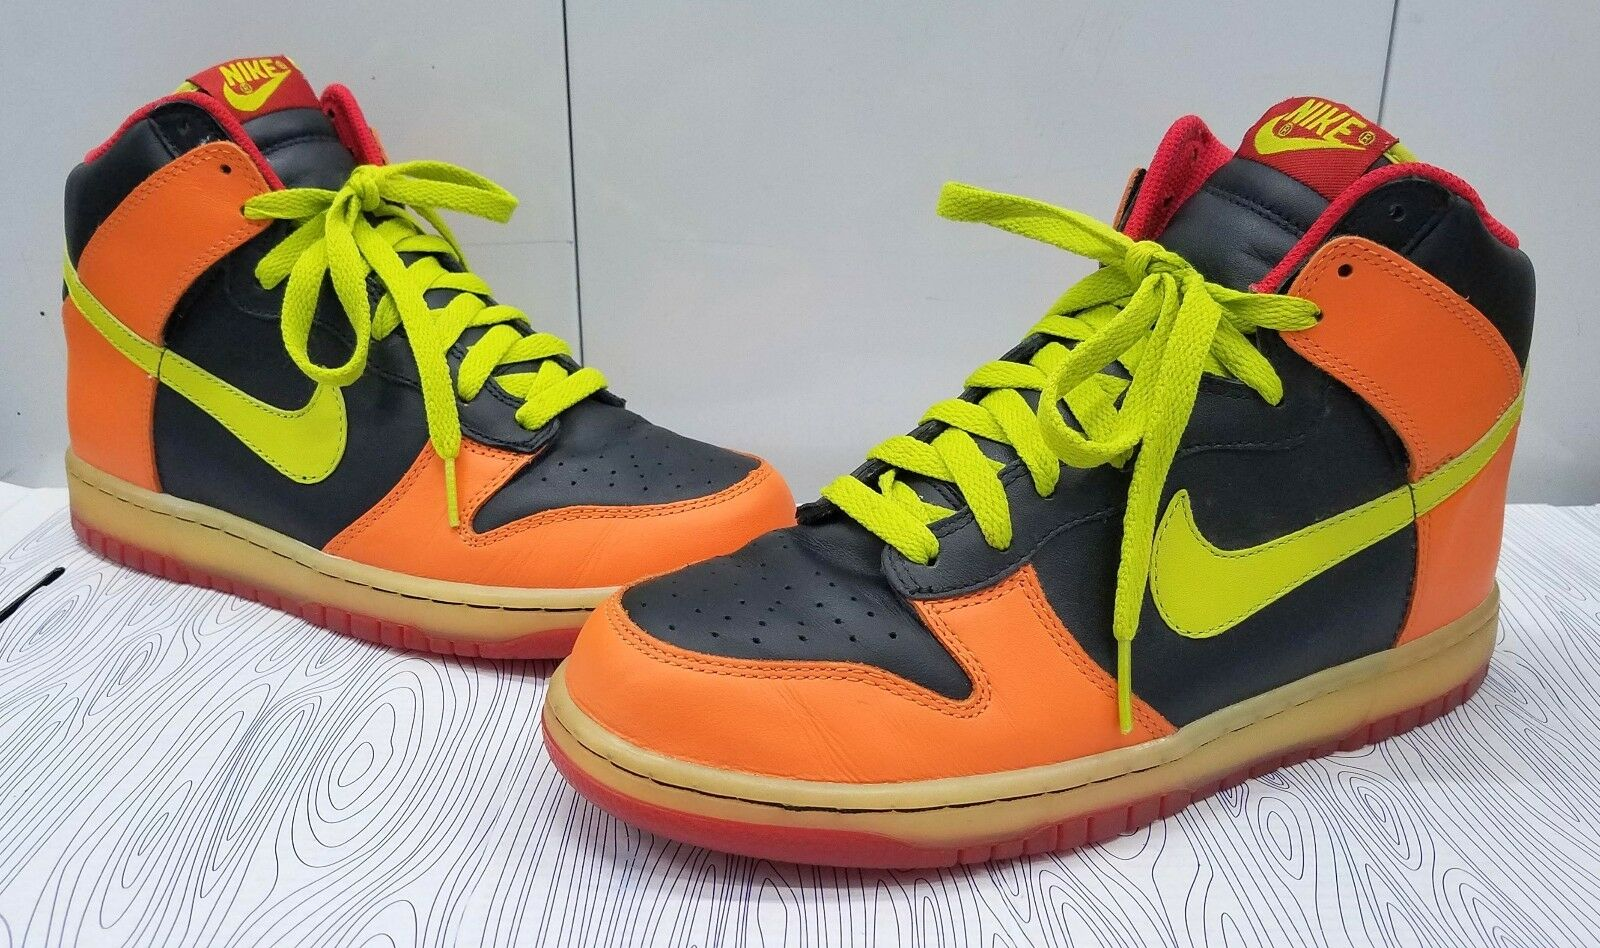 NIKE SB DUNK HIGH ORANGE/LIME/BLACK/RED MEN'S SIZE 8 2018 309432-032 Wild casual shoes